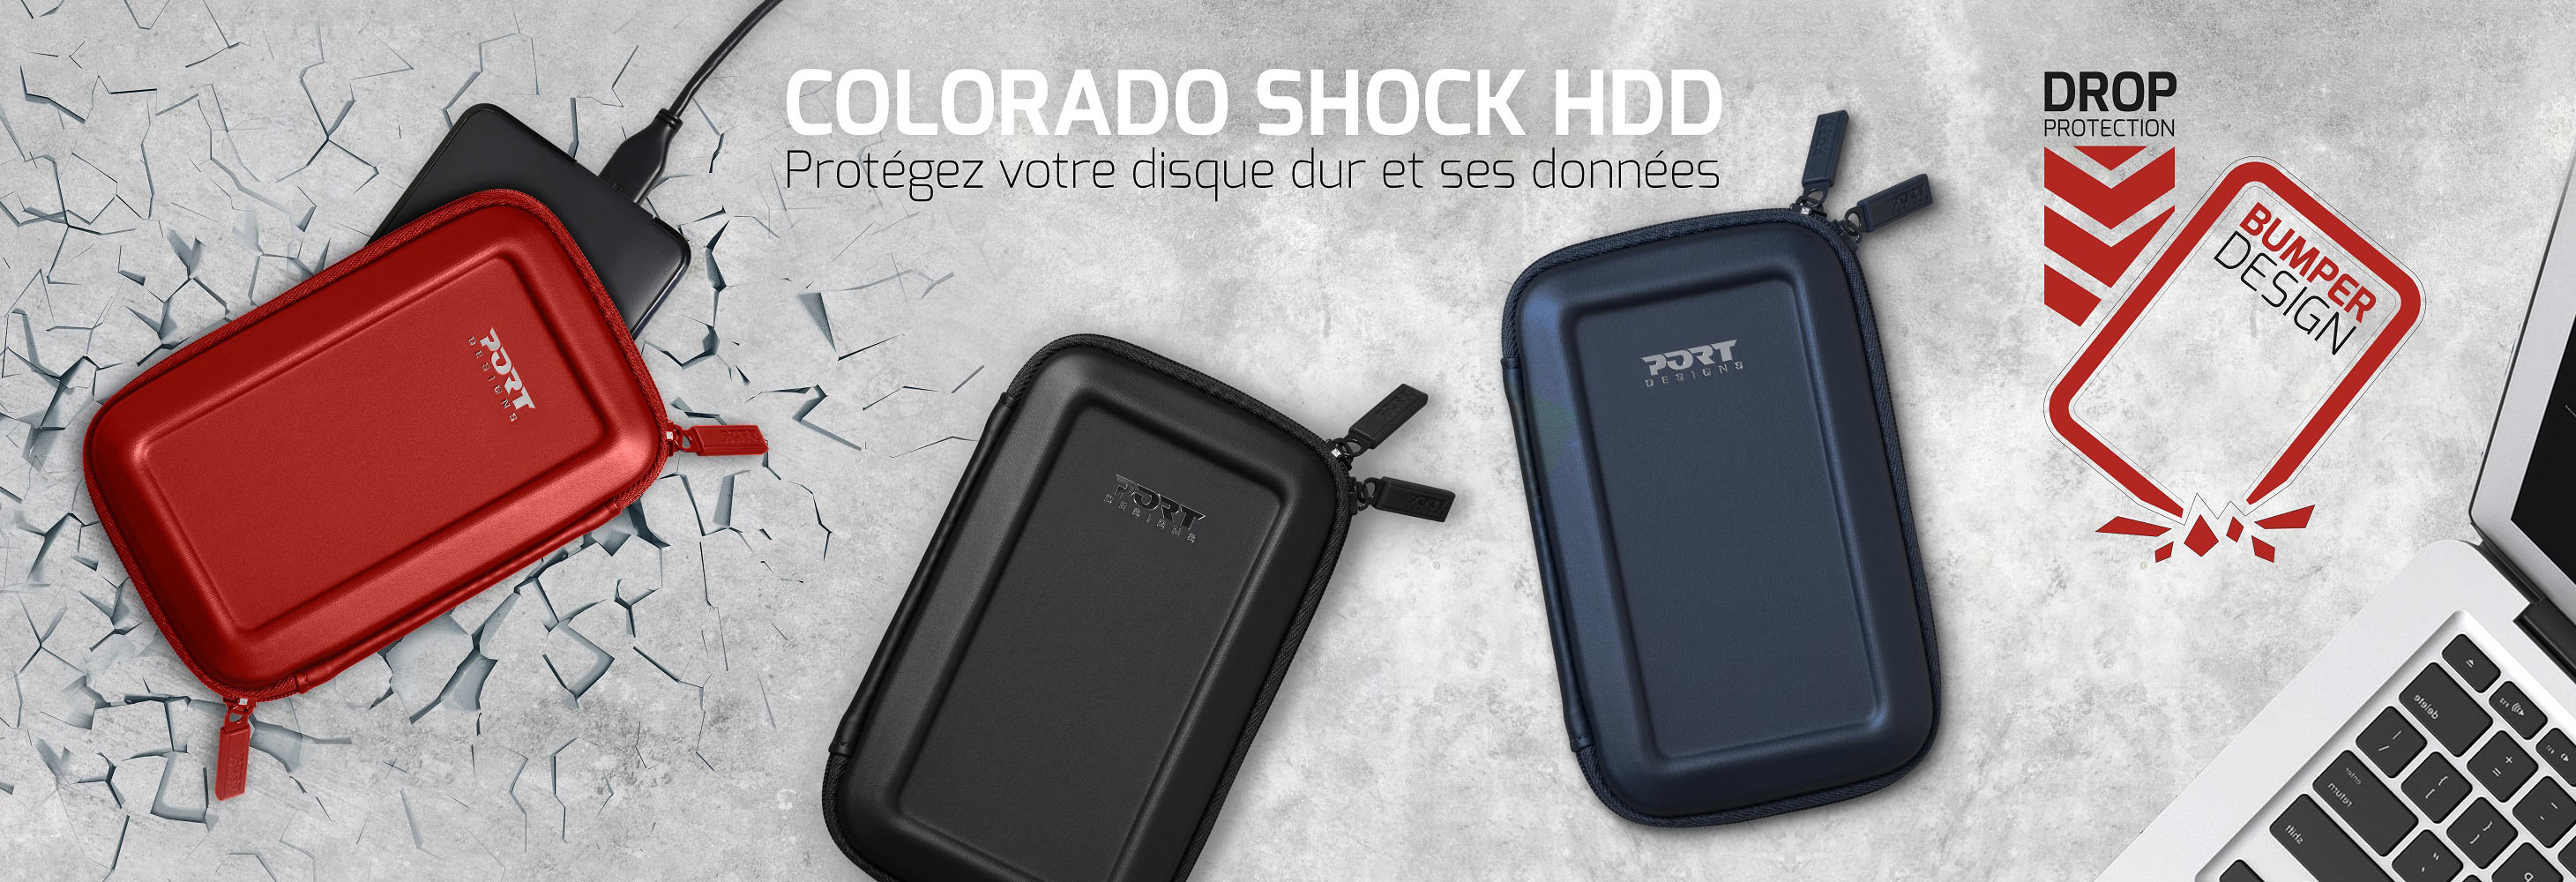 Colorado shock HDD